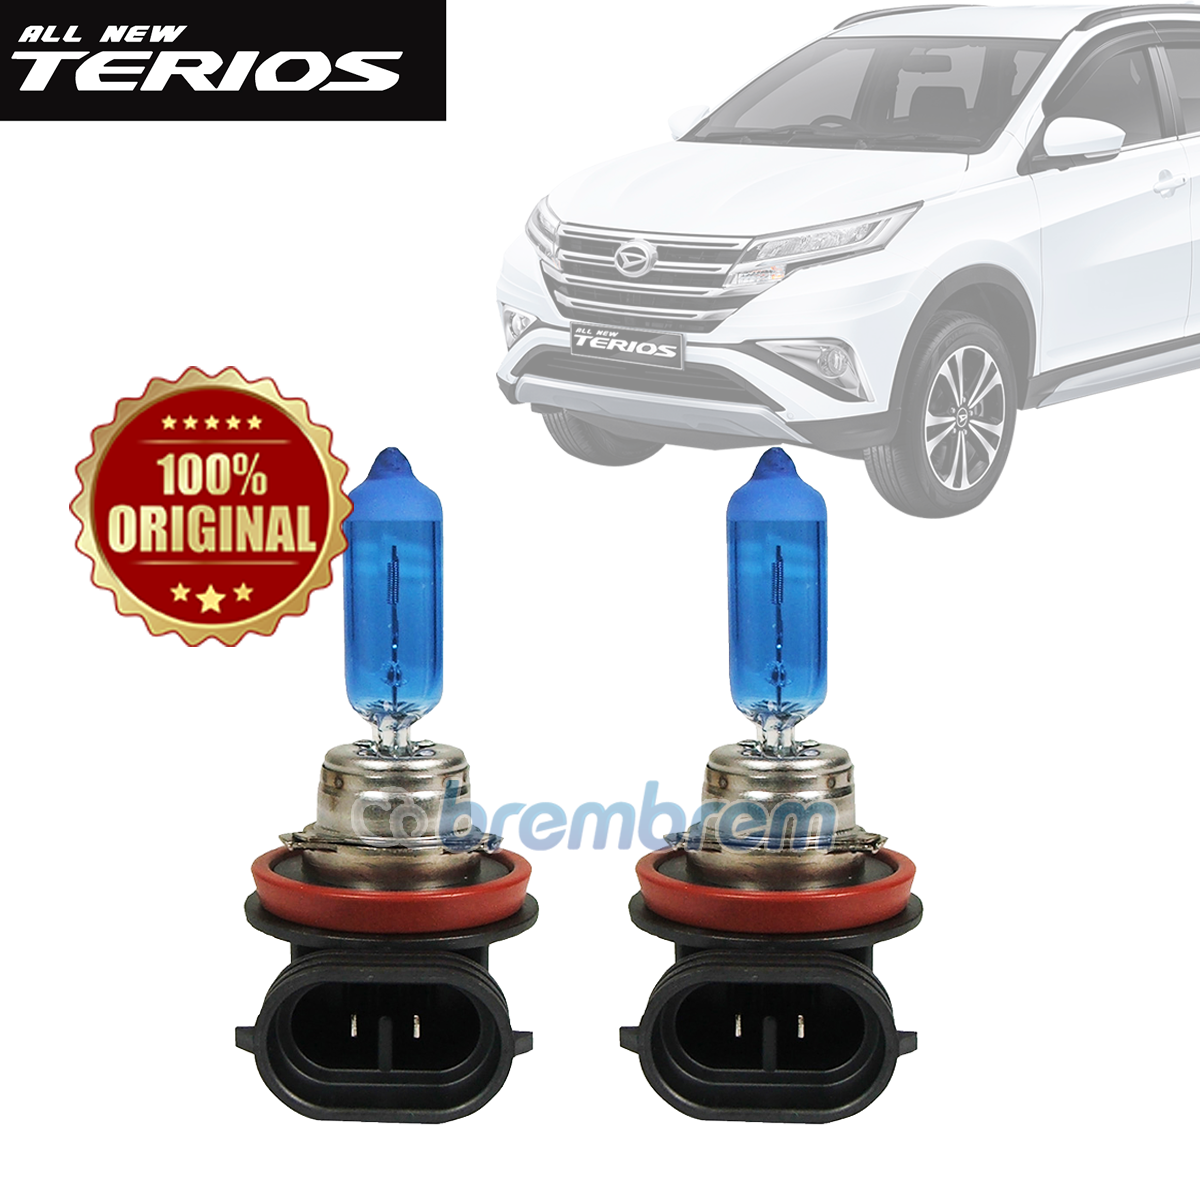 PHILIPS DIAMOND VISION H11 (5000K) - LAMPU HALOGEN DAIHATSU ALL NEW TERIOS